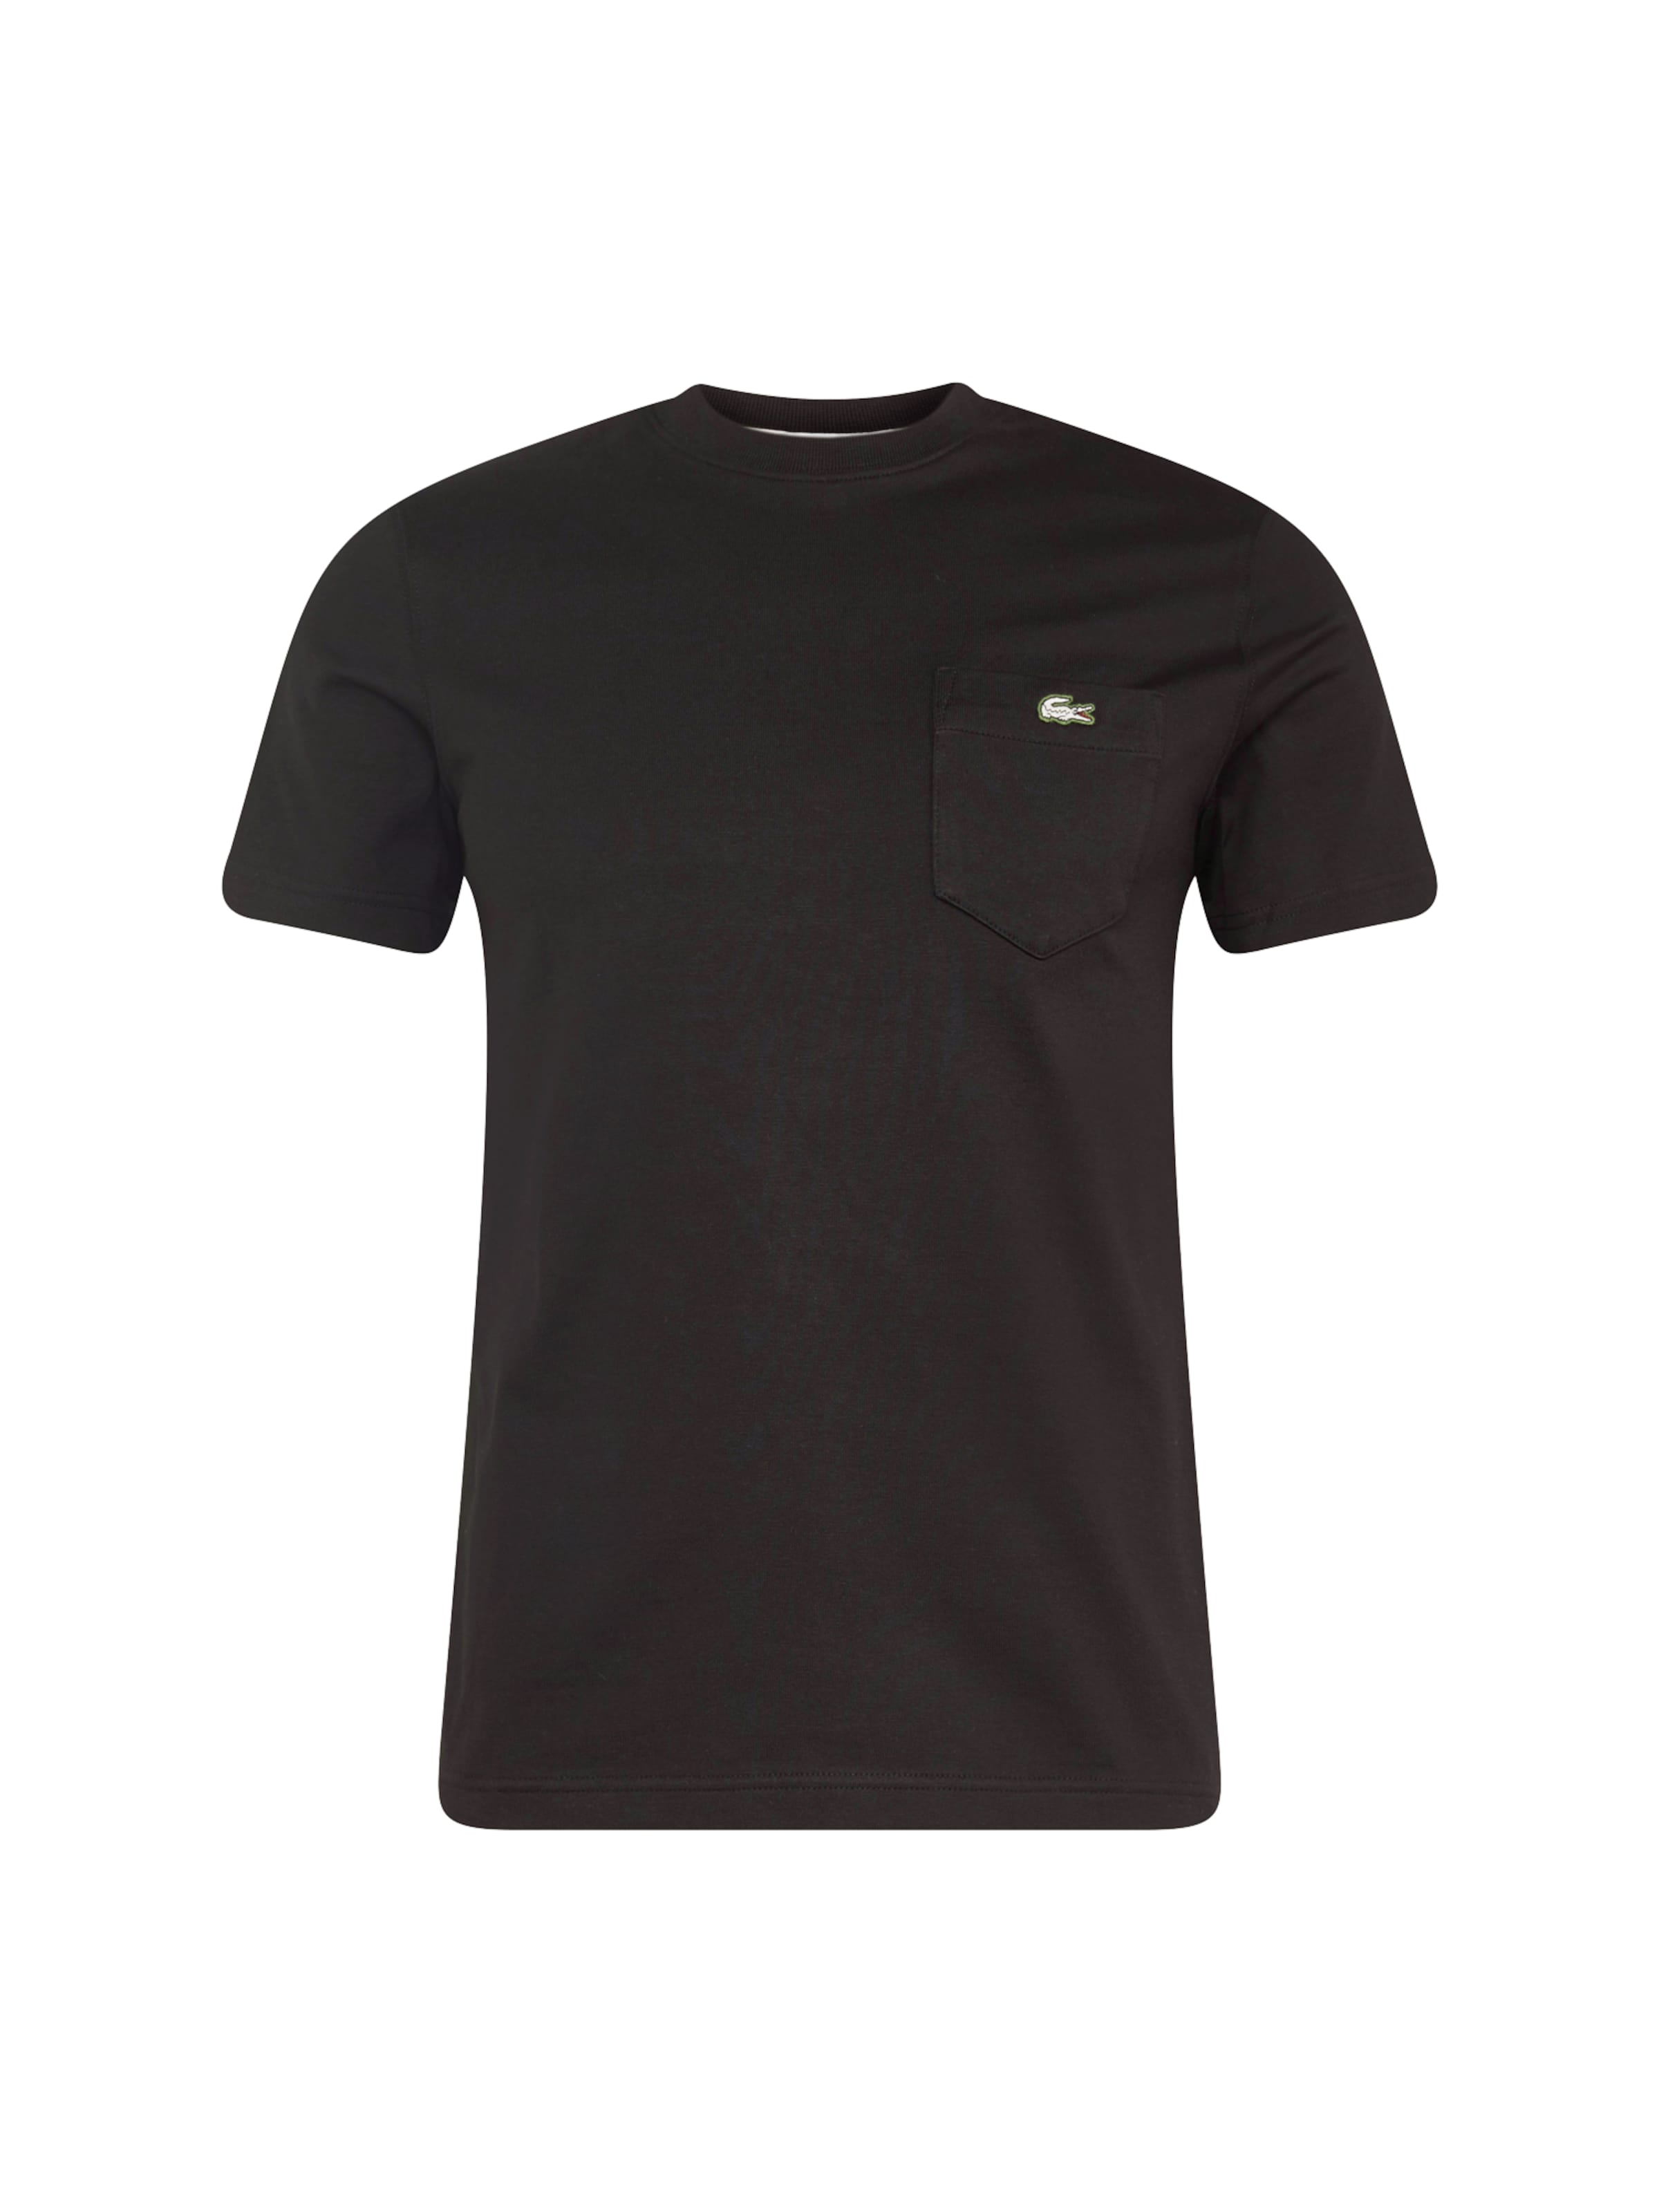 Live In Live Shirt Lacoste Shirt Live Schwarz Schwarz Lacoste Lacoste In Y76bfyg